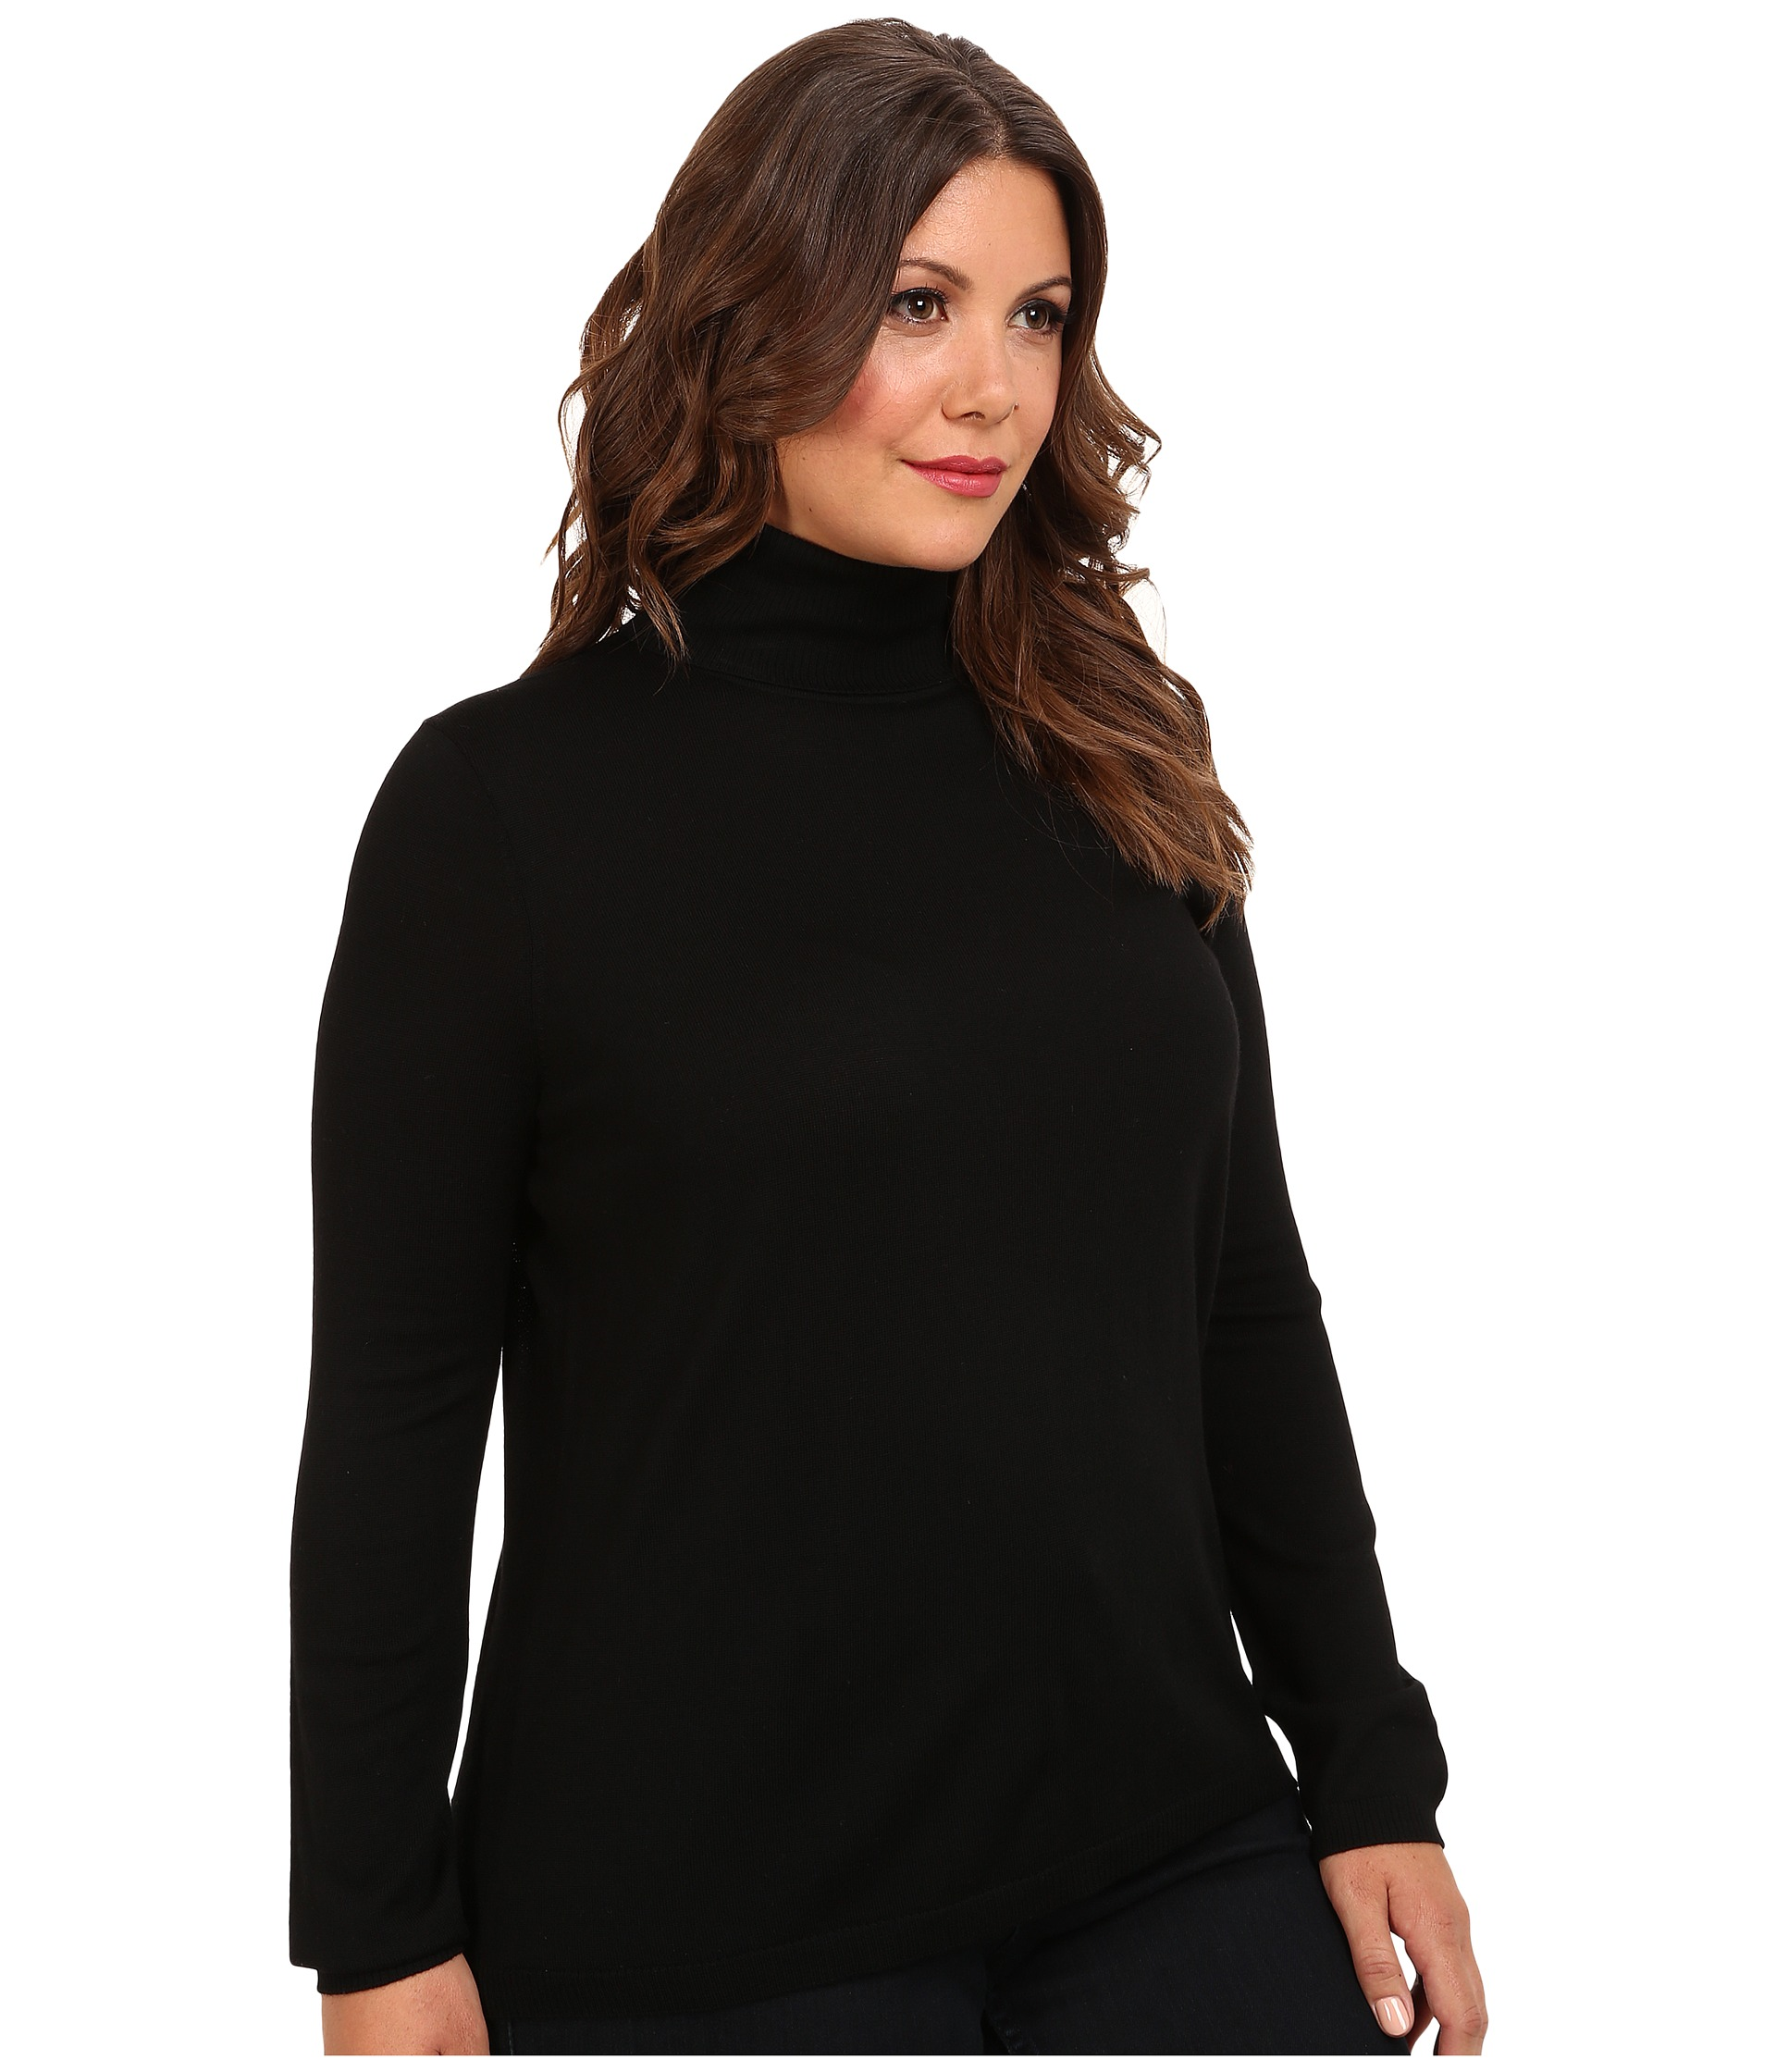 Kmart has a great selection of women's plus size sweaters. Find plus size cardigans from top brands at Kmart.